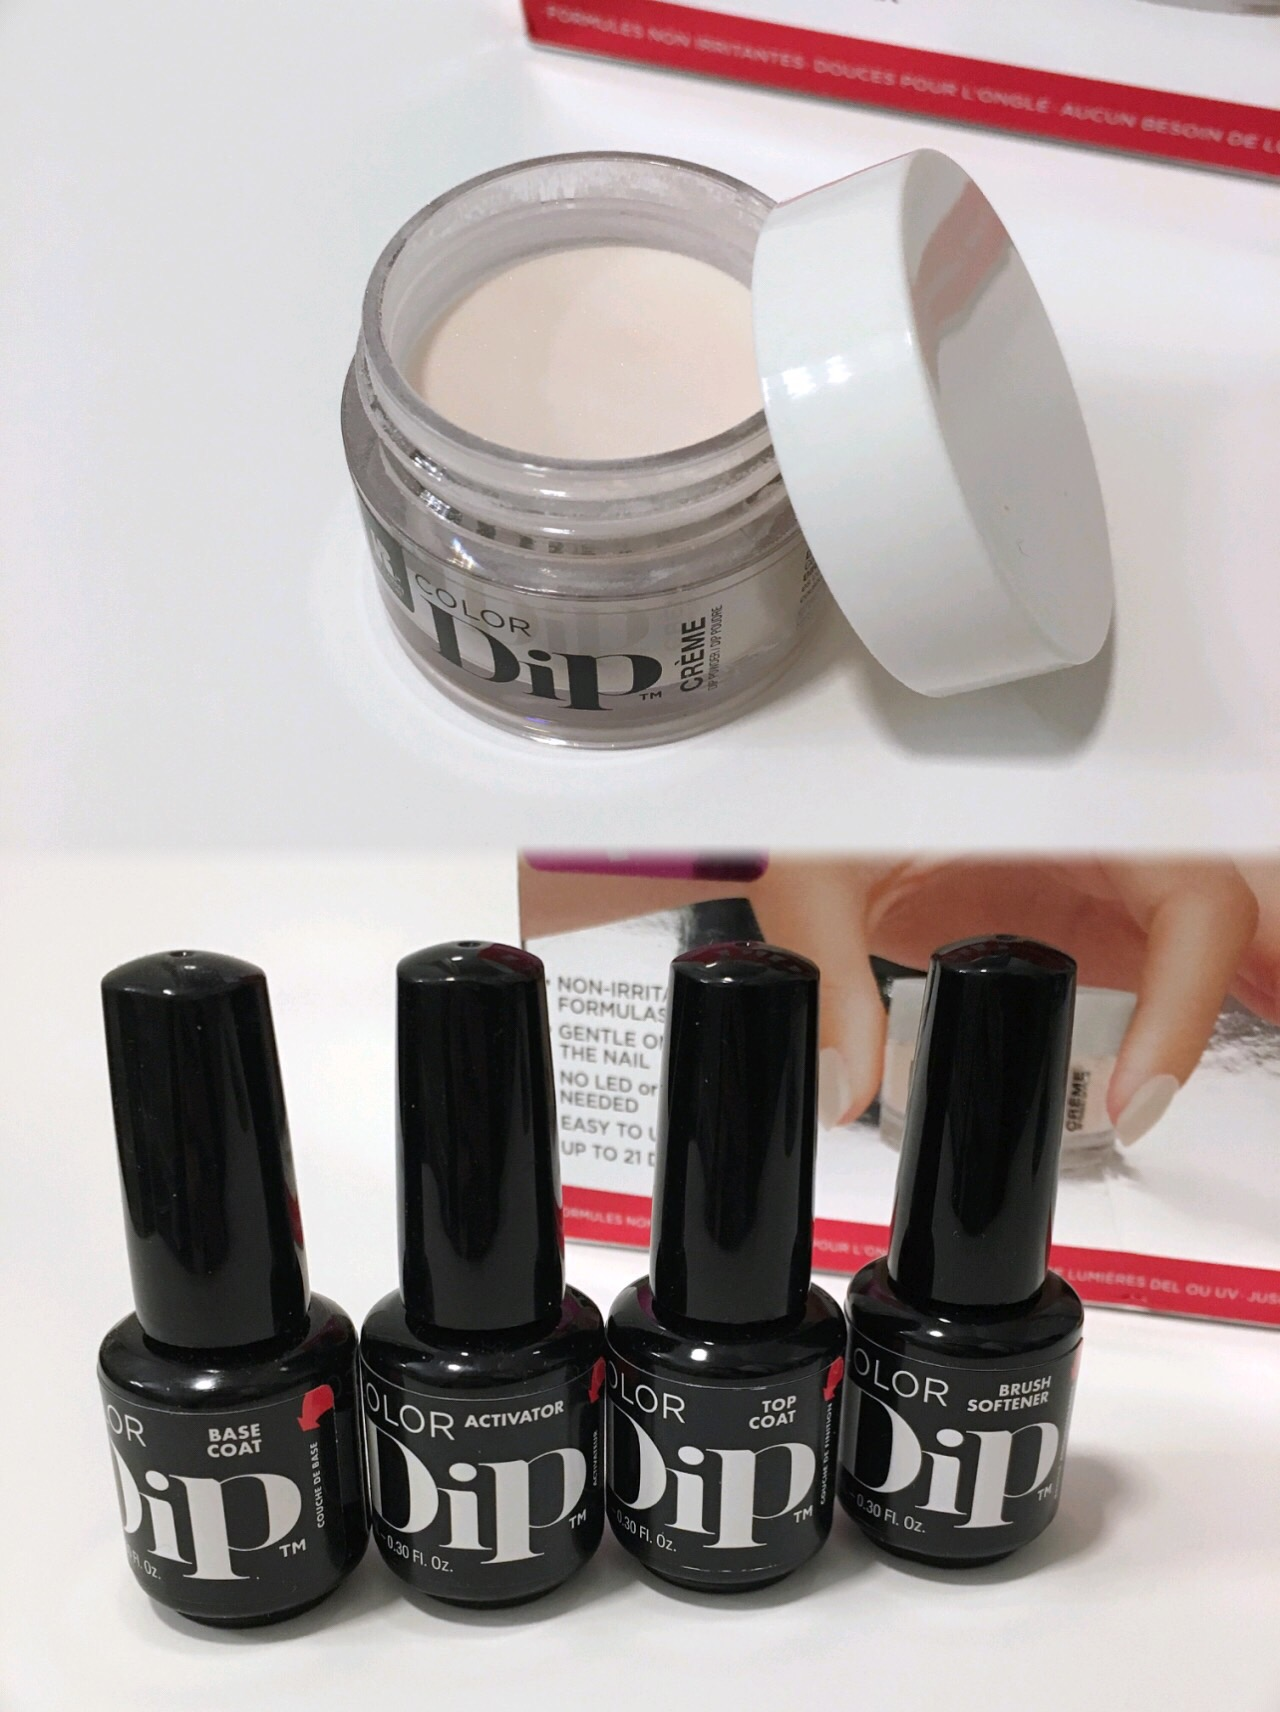 Red Carpet Manicure Dip Powder Kit Review.JPG